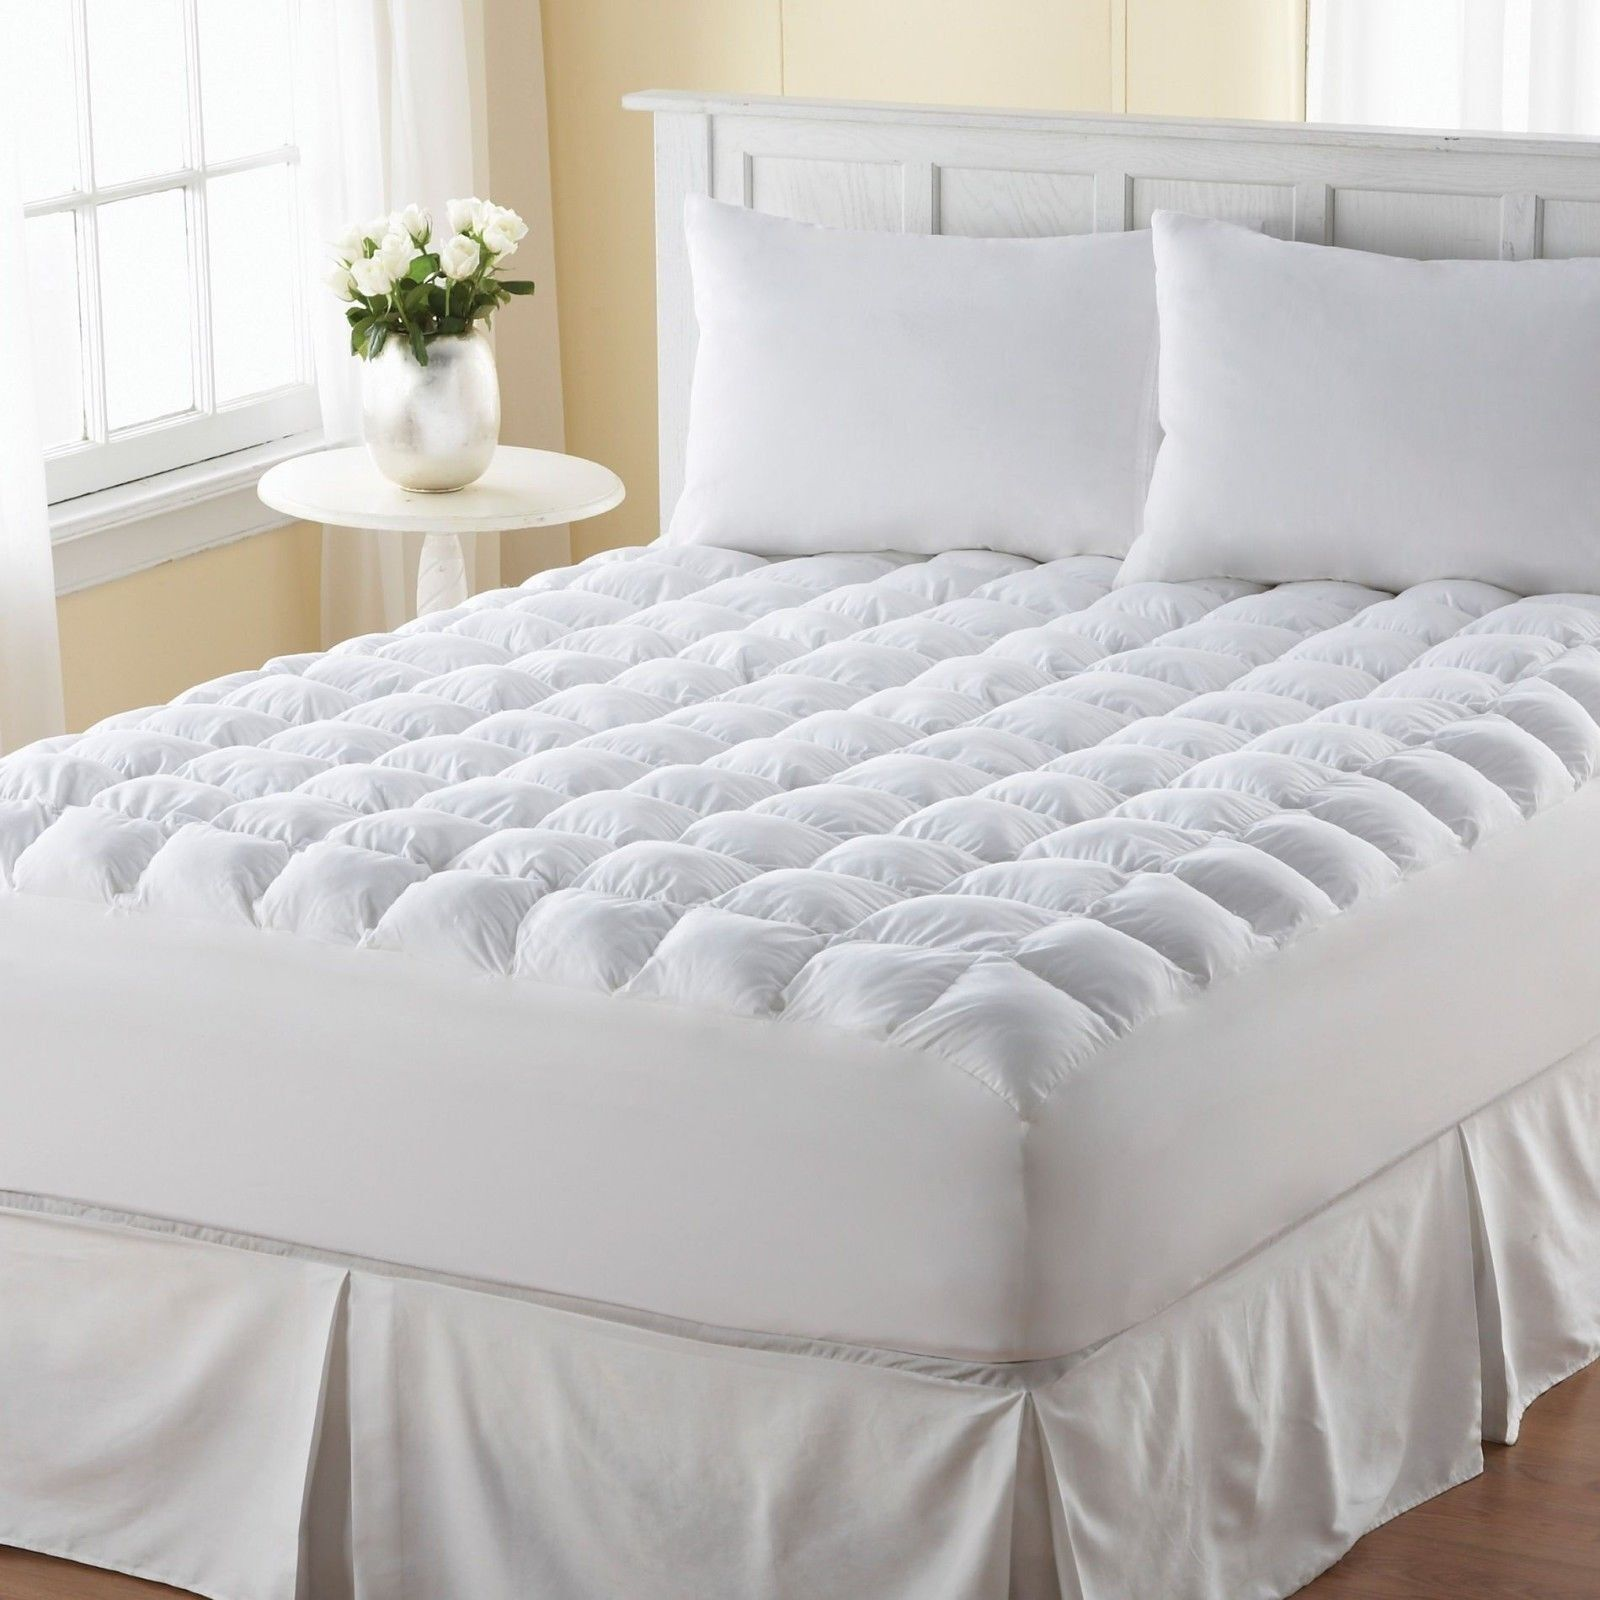 ideal mattress simplicity bed toppers with microfiber king fiber bedroom and blend of topper an decor this creativeworks home practicality size